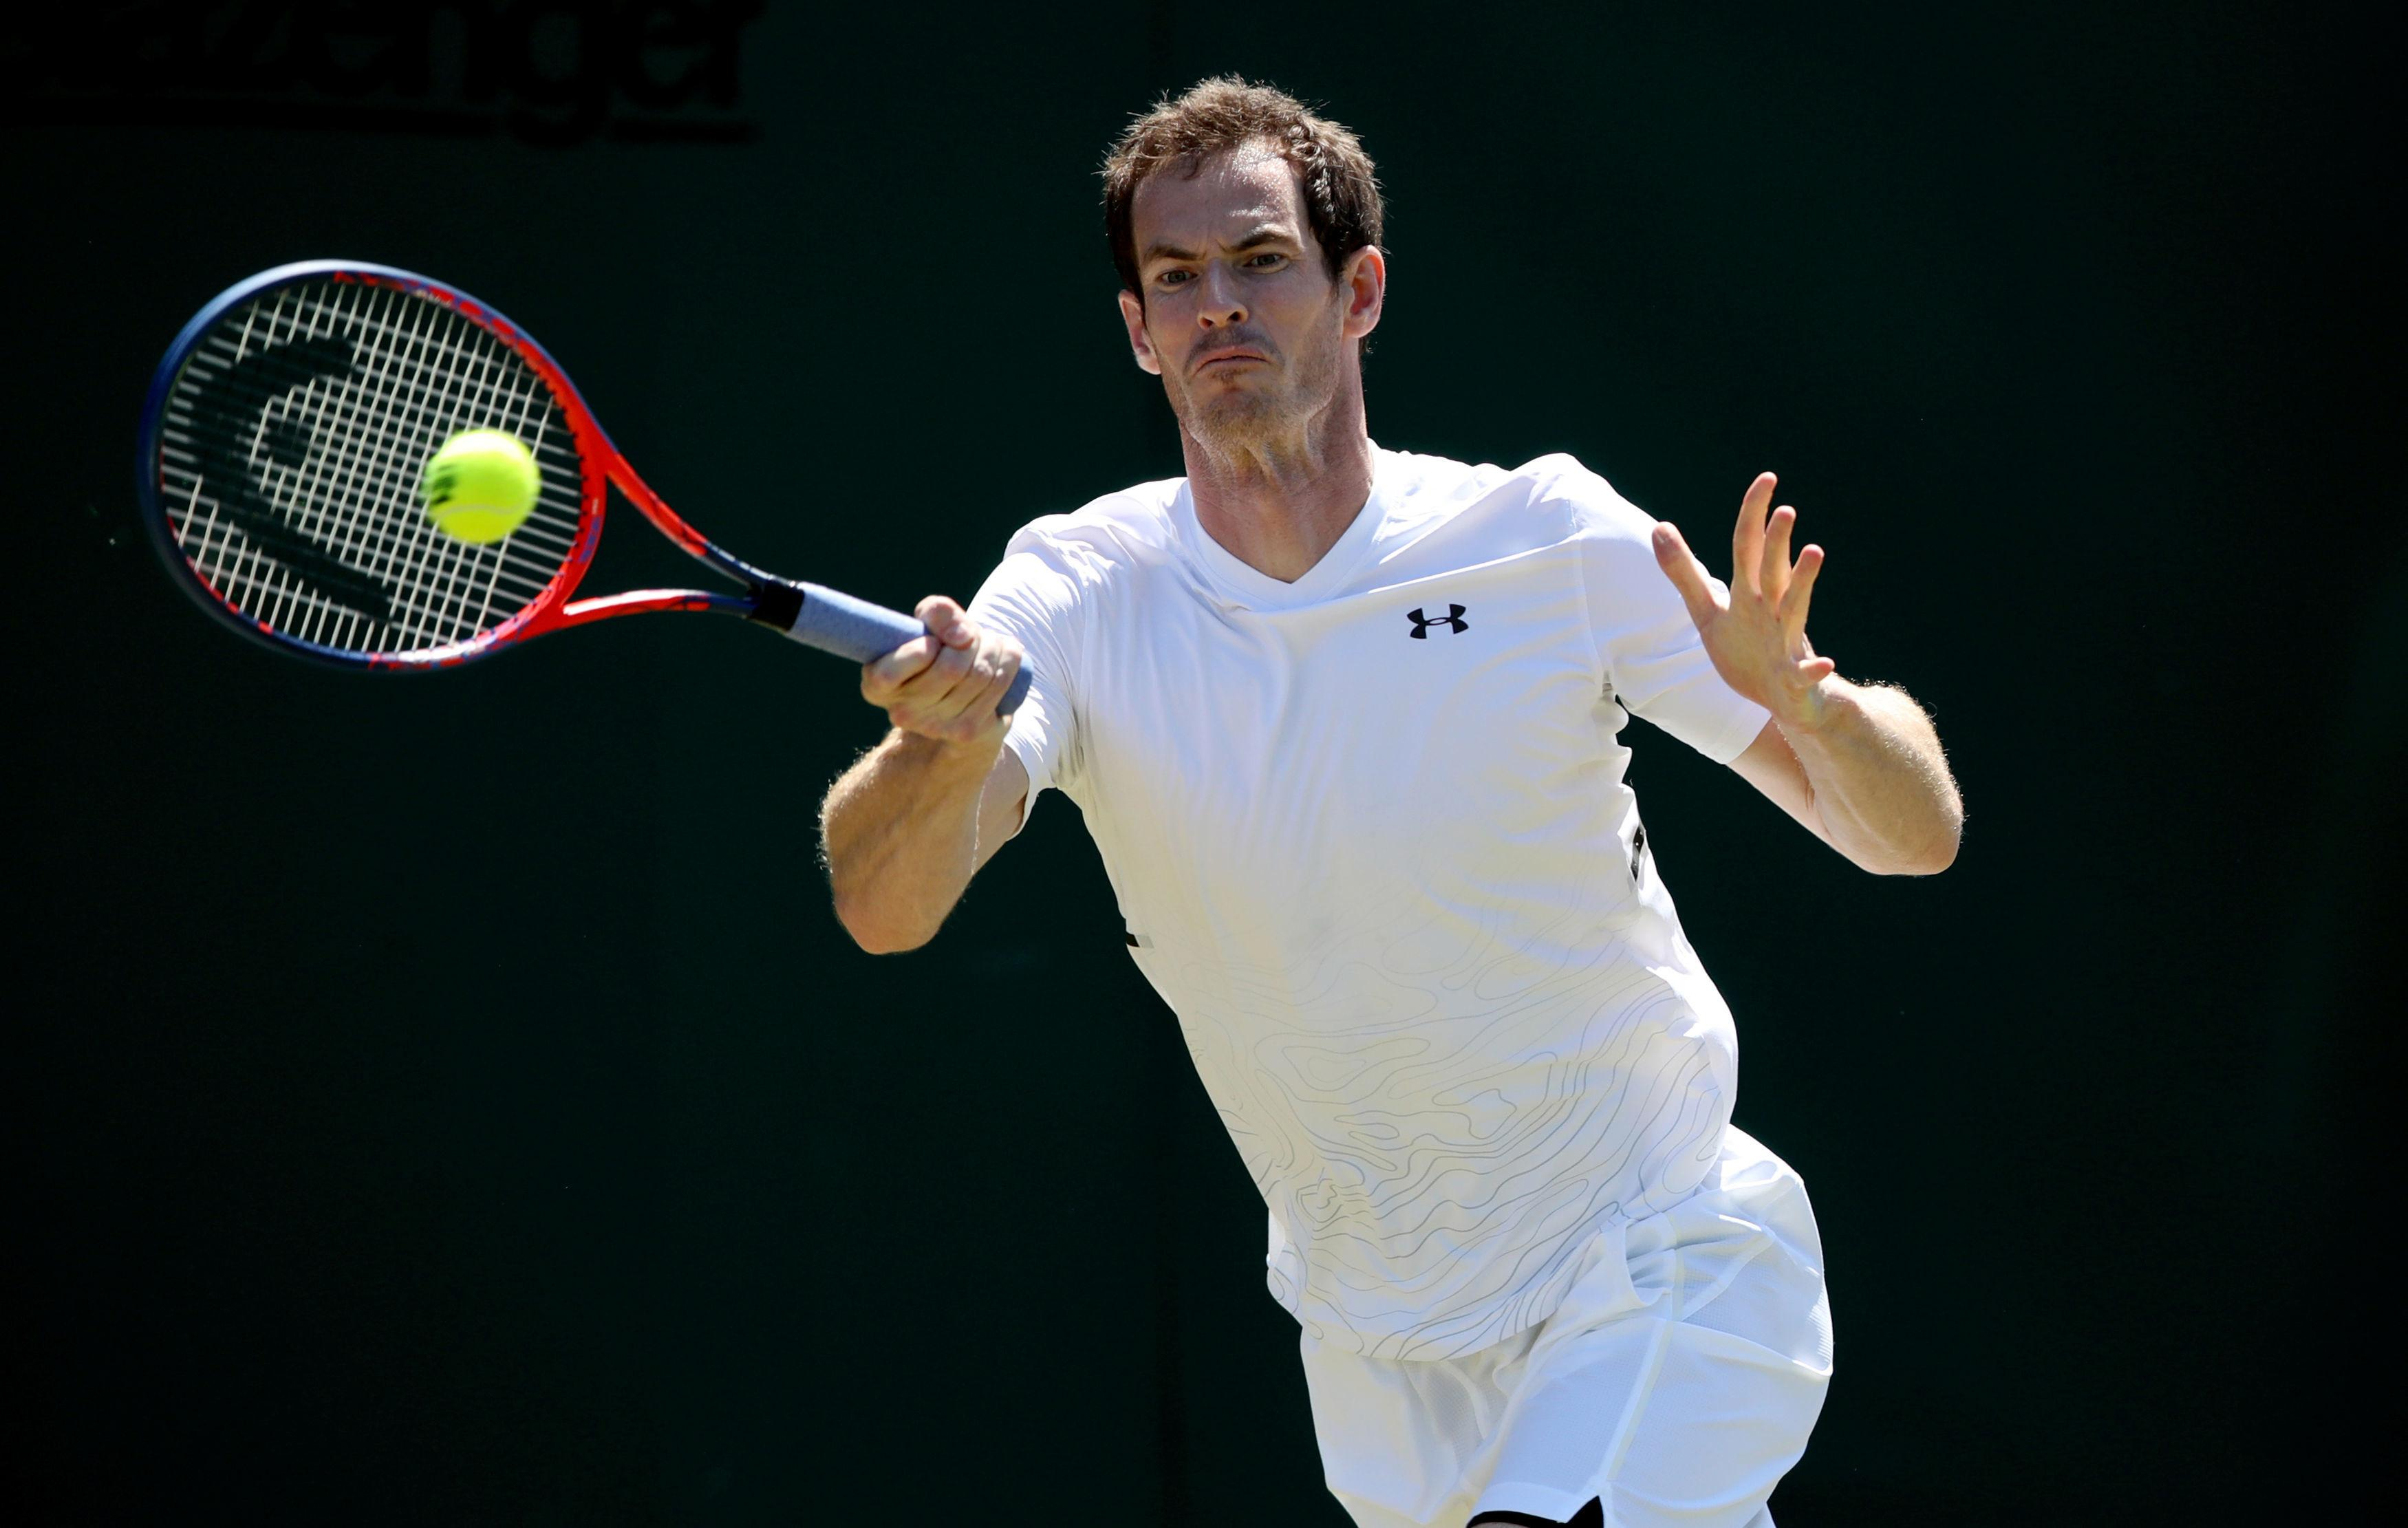 Murray entertained fans' questions during a break from training